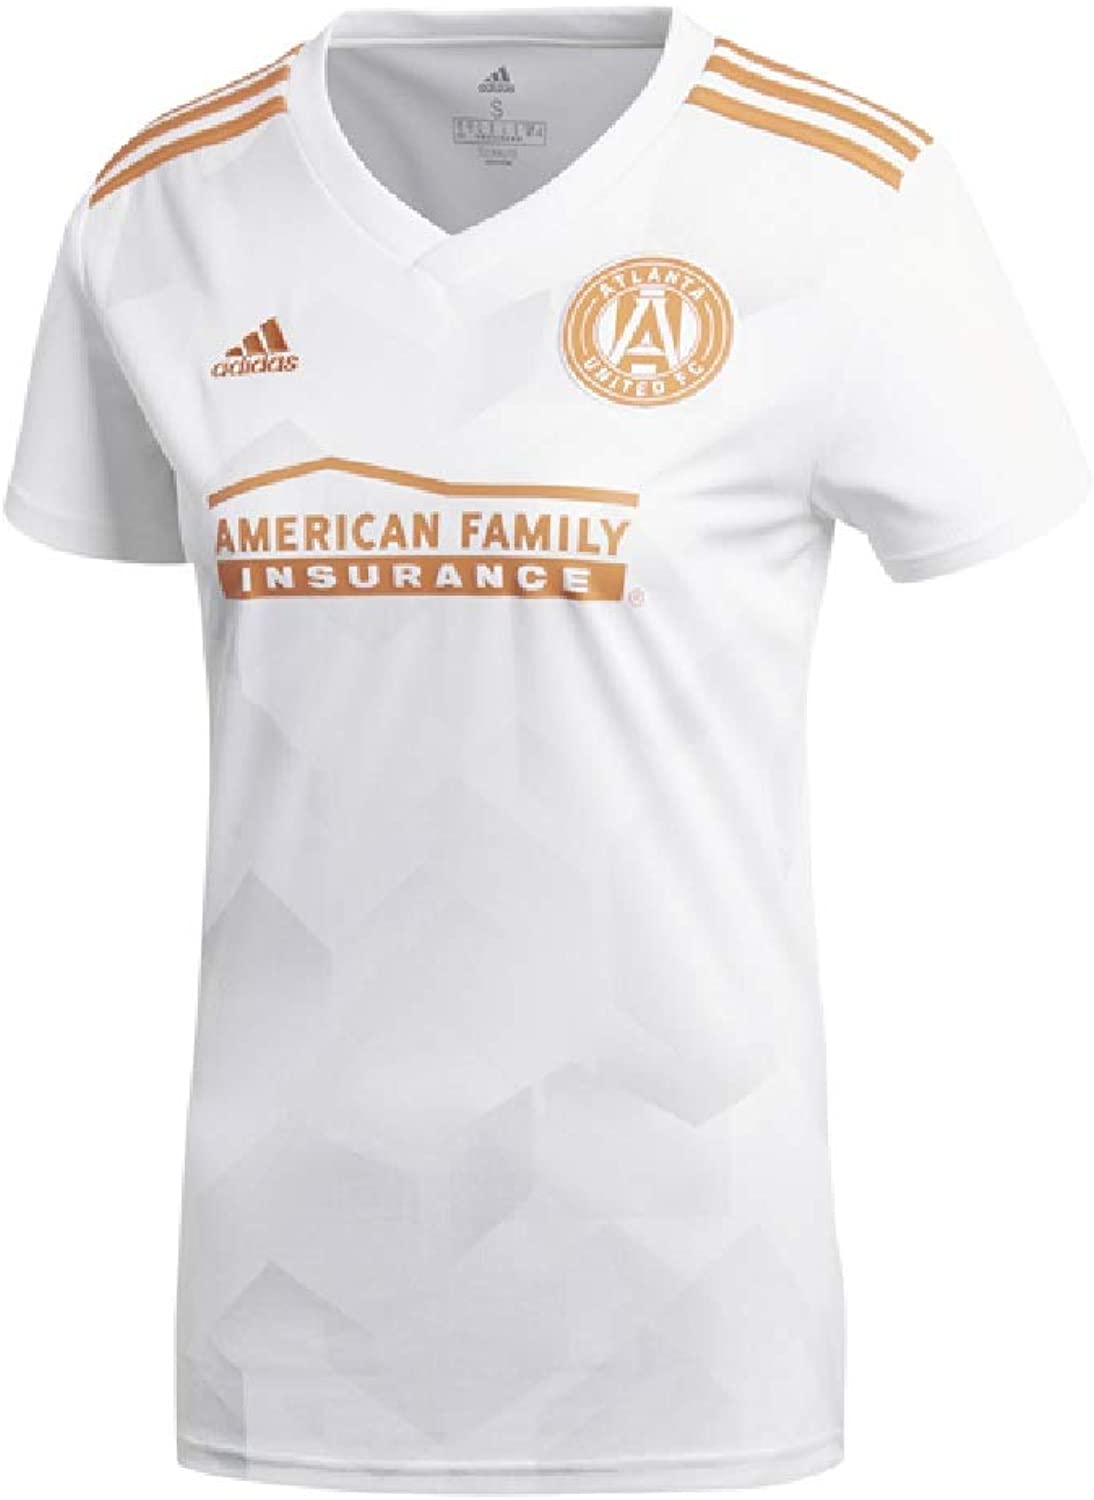 Adidas Atlanta United FC Women's Replica Jersey White (Large)